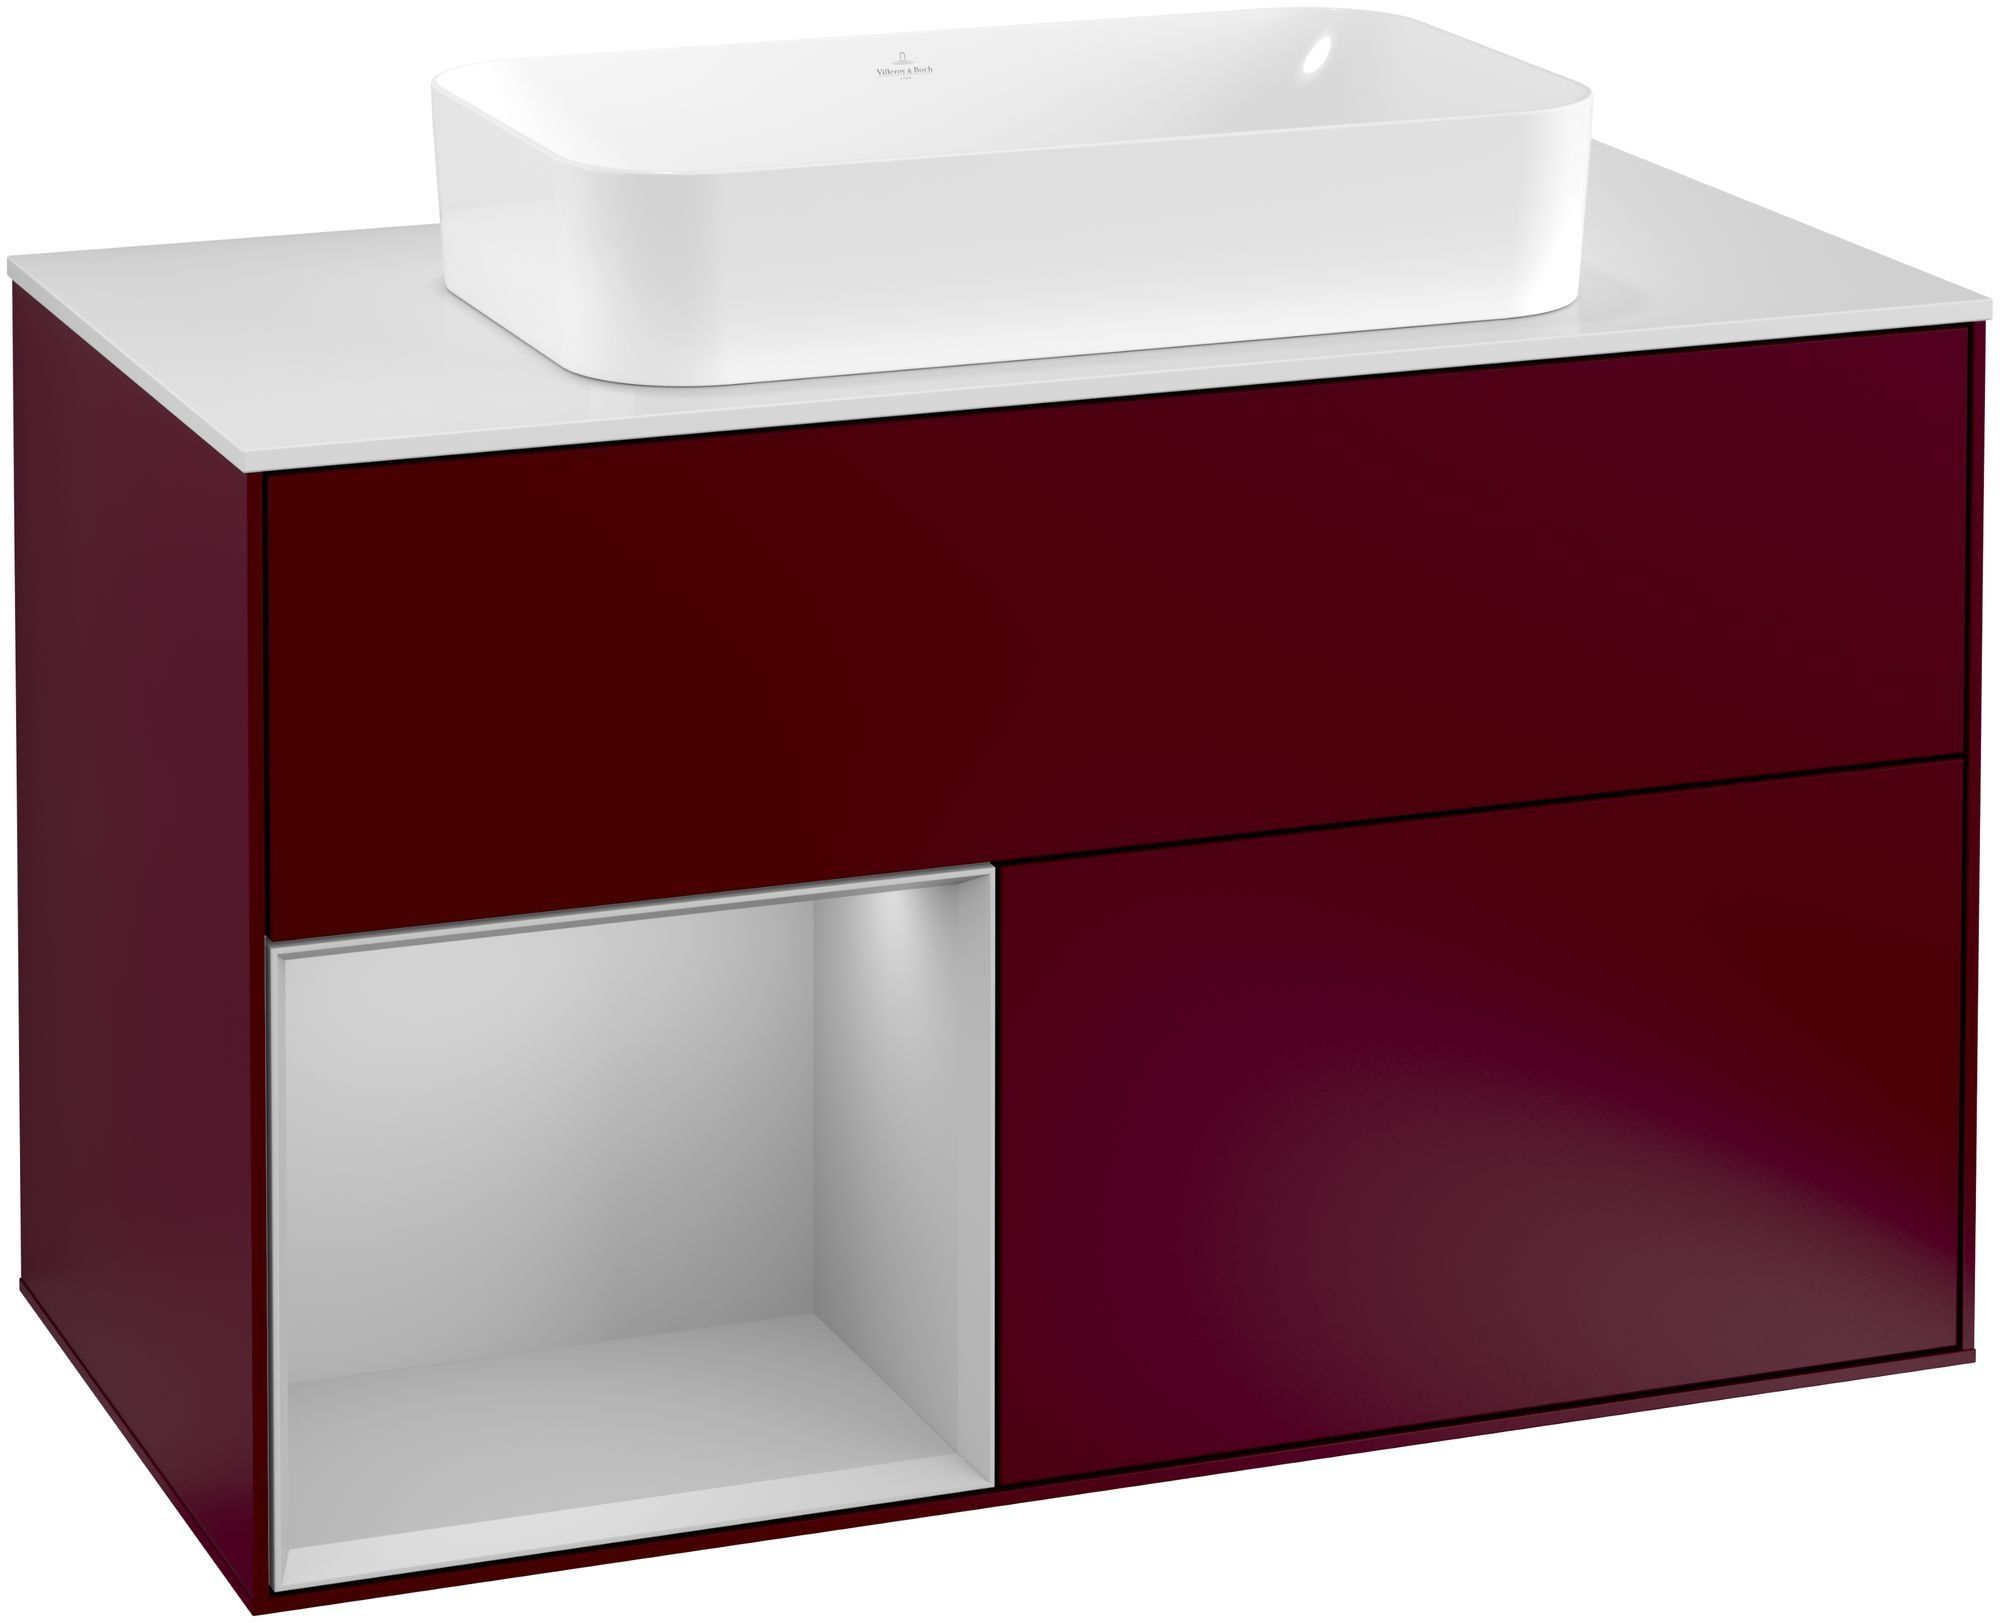 Villeroy & Boch Finion G24 Waschtischunterschrank mit Regalelement 2 Auszüge für WT mittig LED-Beleuchtung B:100xH:60,3xT:50,1cm Front, Korpus: Peony, Regal: Light Grey Matt, Glasplatte: White Matt G241GJHB